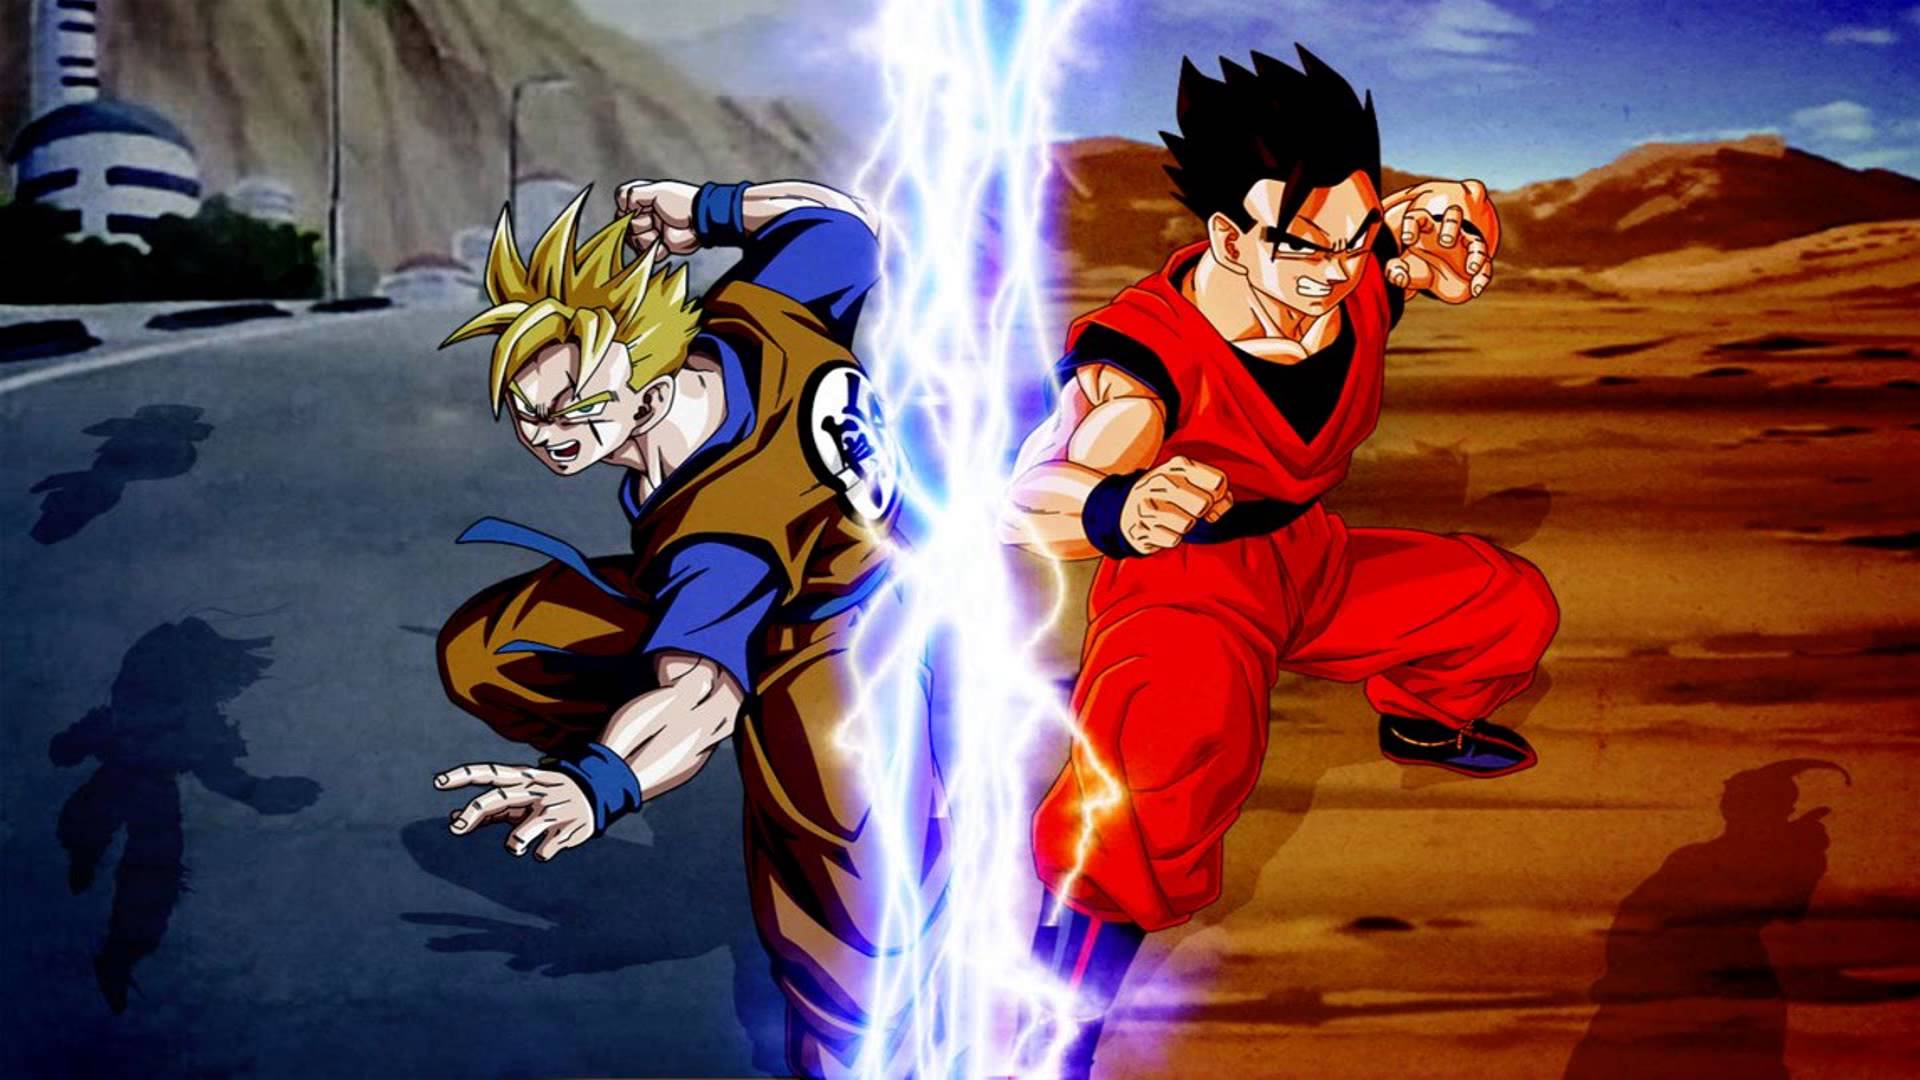 Graphics For Ultimate Gohan Graphics | www.graphicsbuzz.com